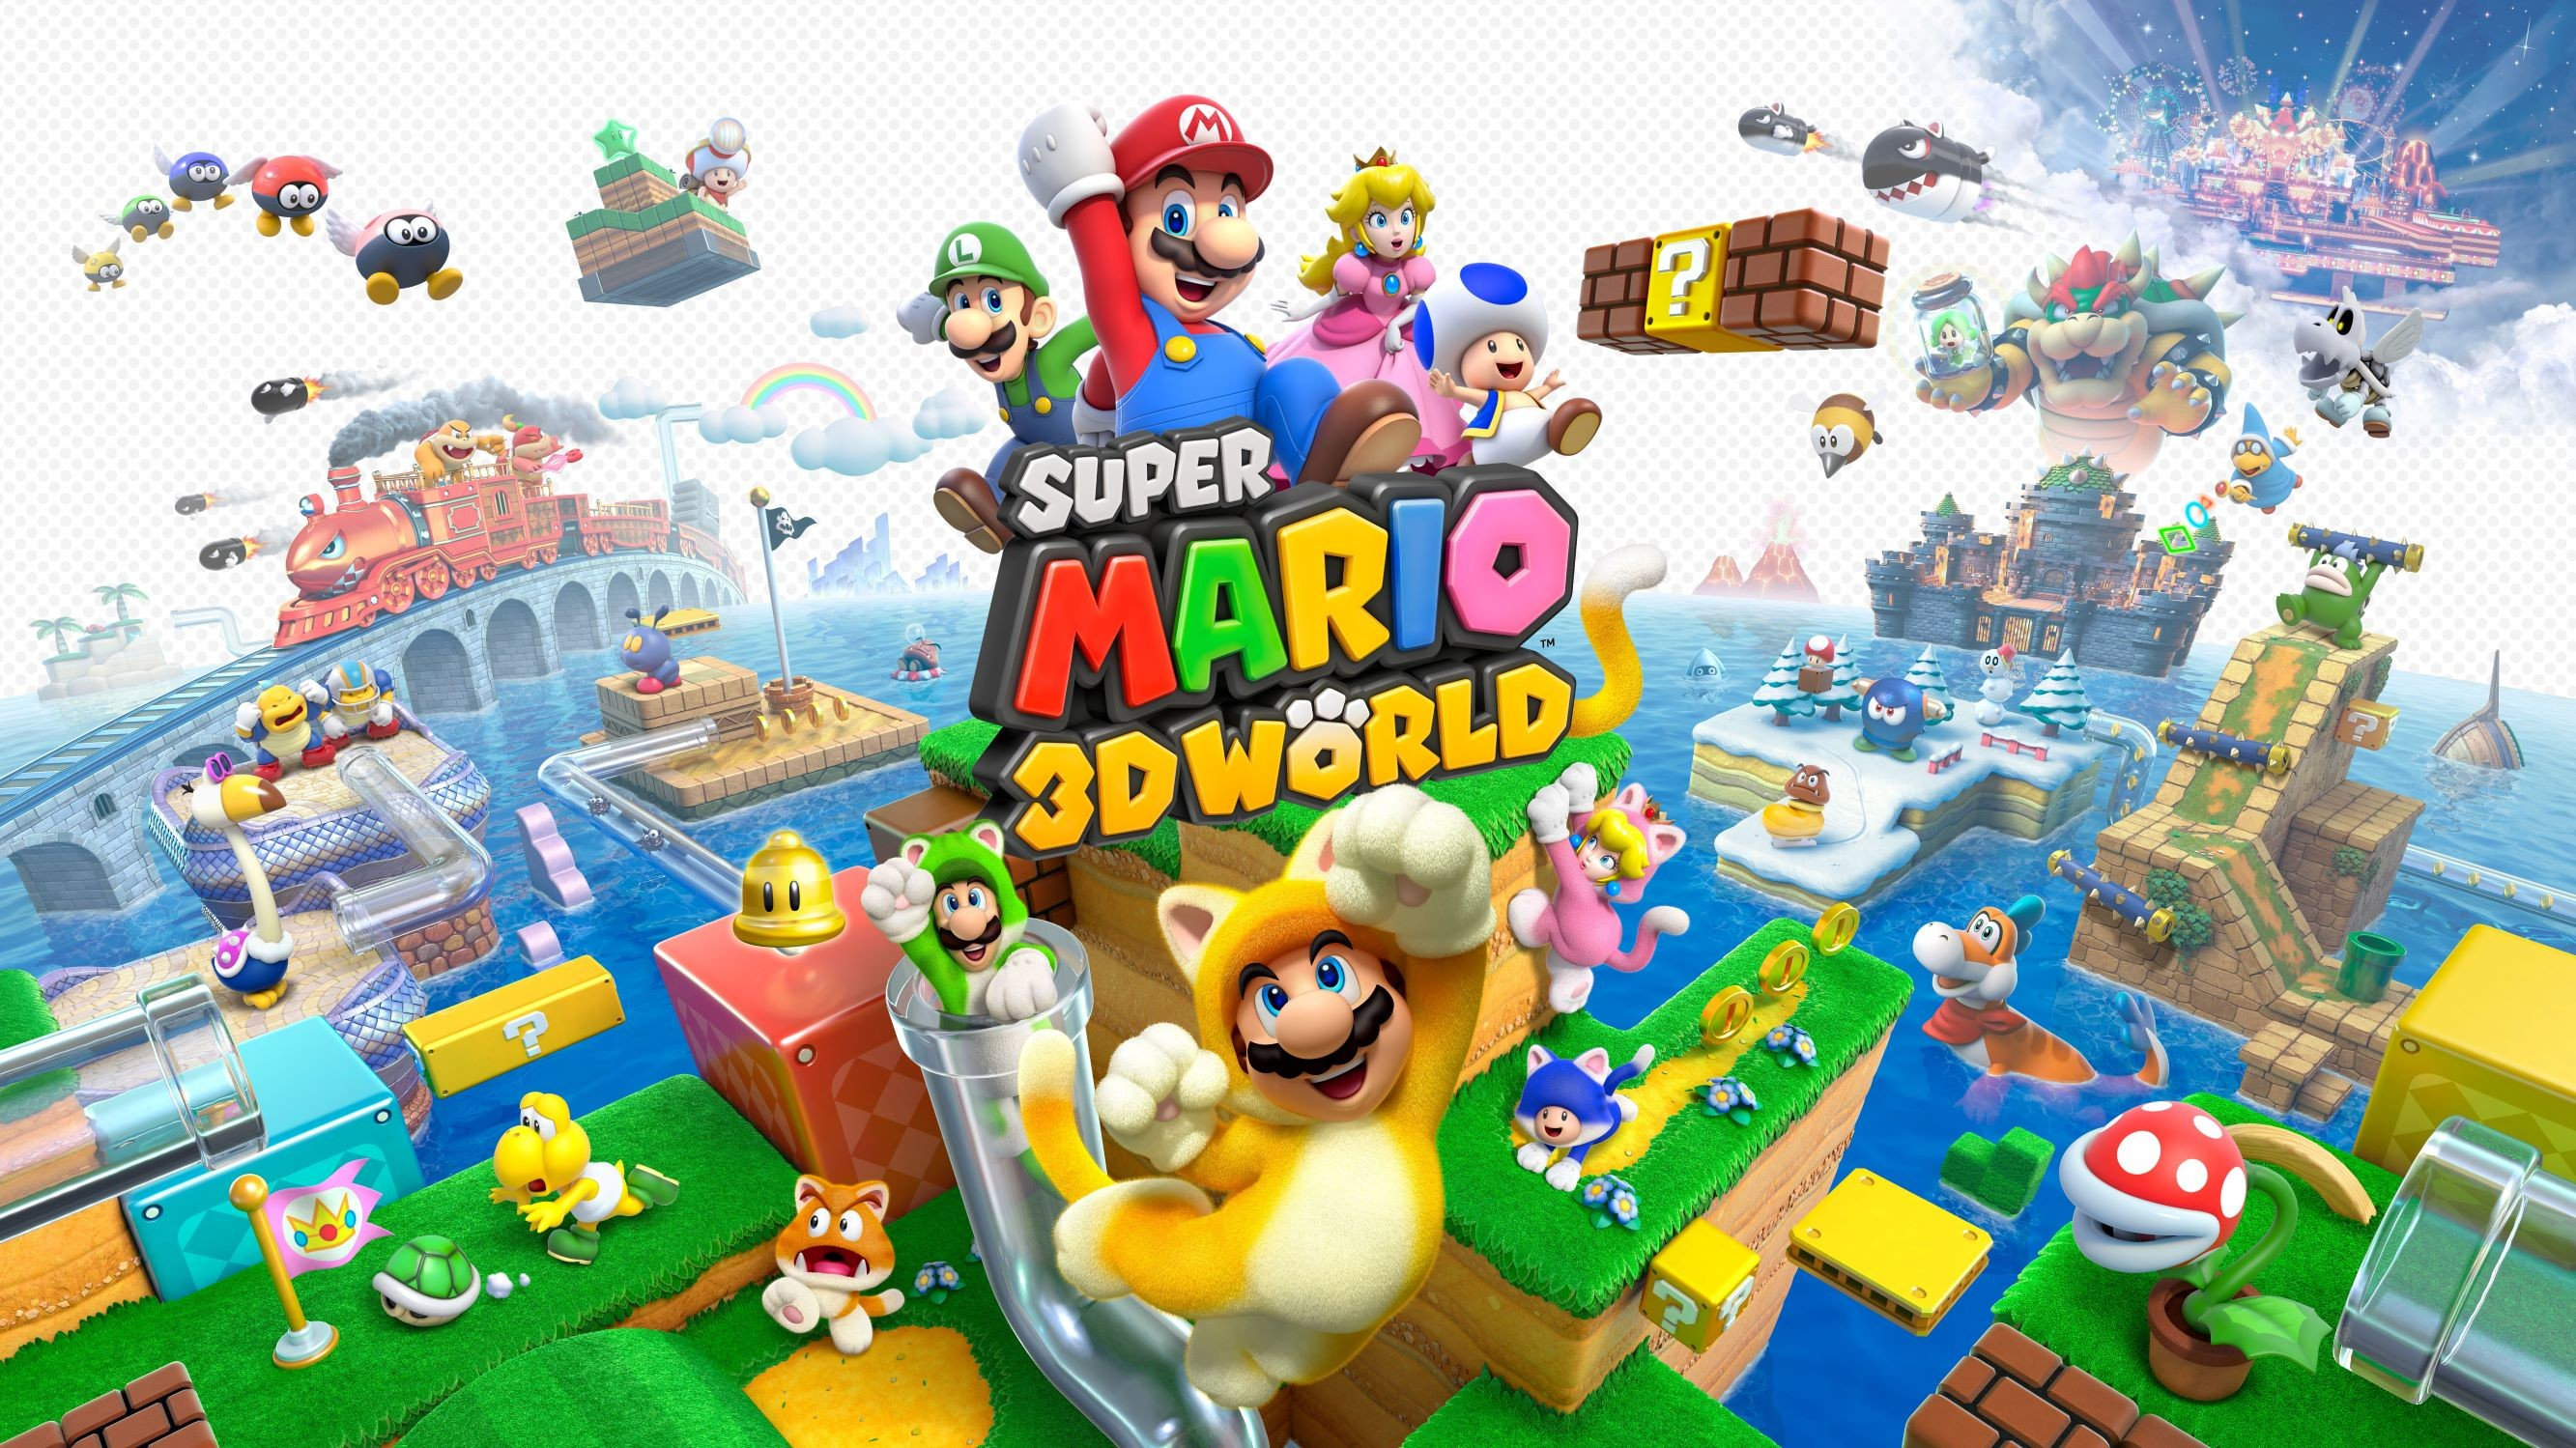 Super Mario 3d World For Switch Spotted On Best Buy Database Neowin